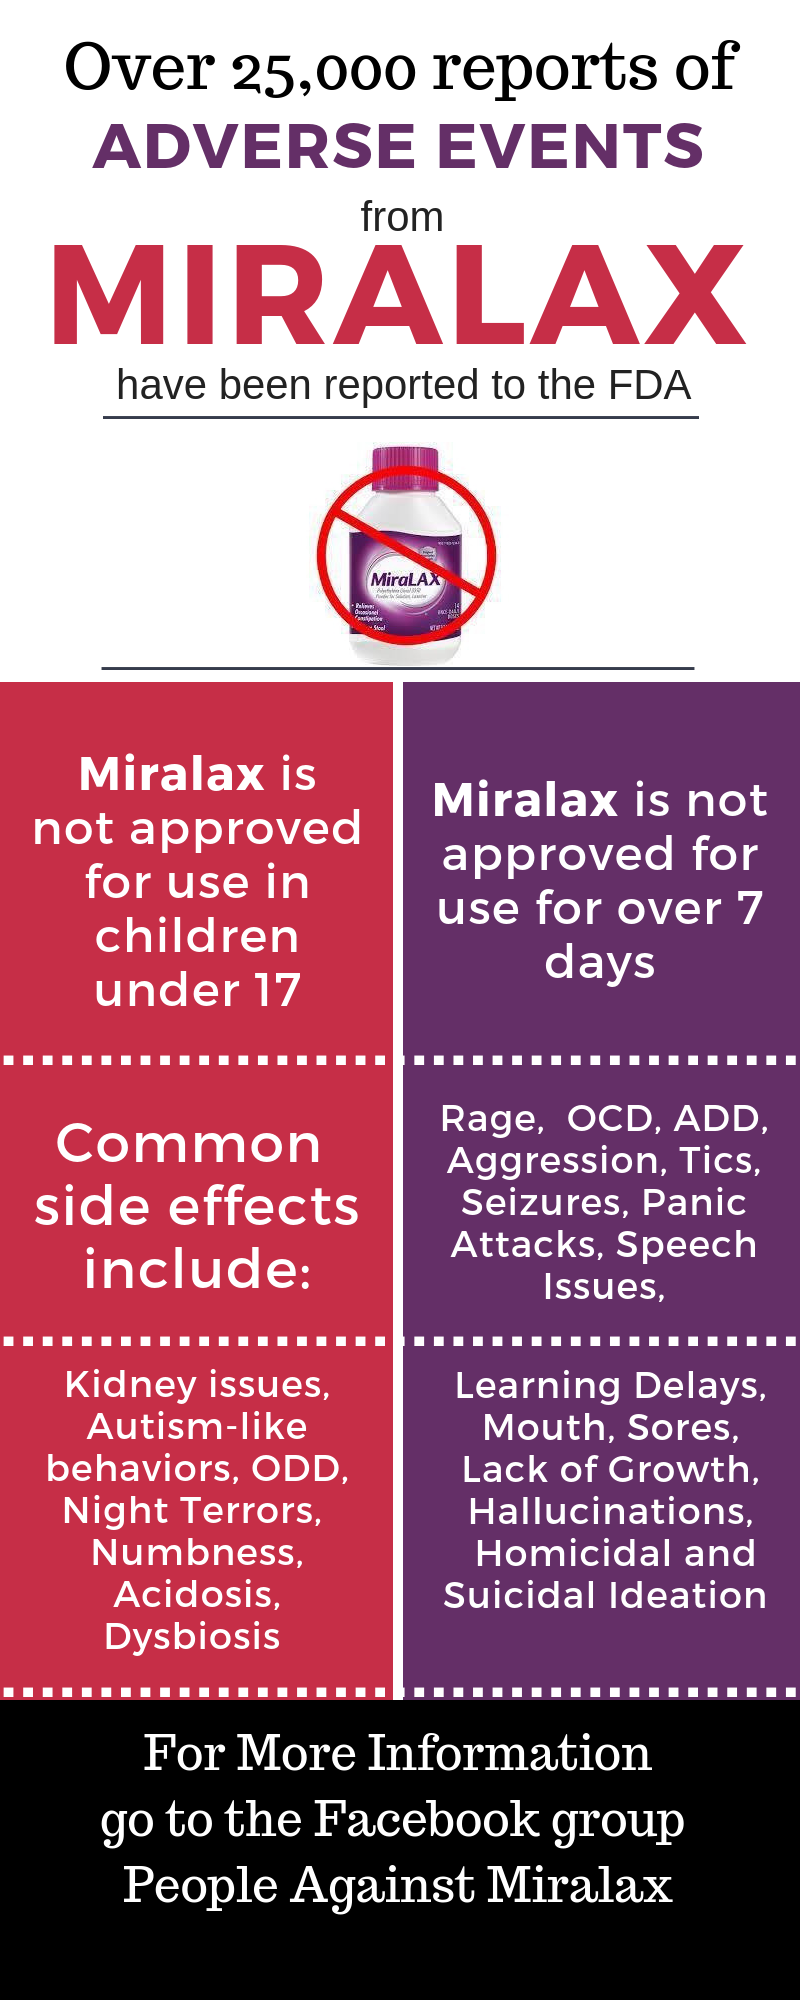 Can I take Miralax at 4 times the daily dose forever? - Quora